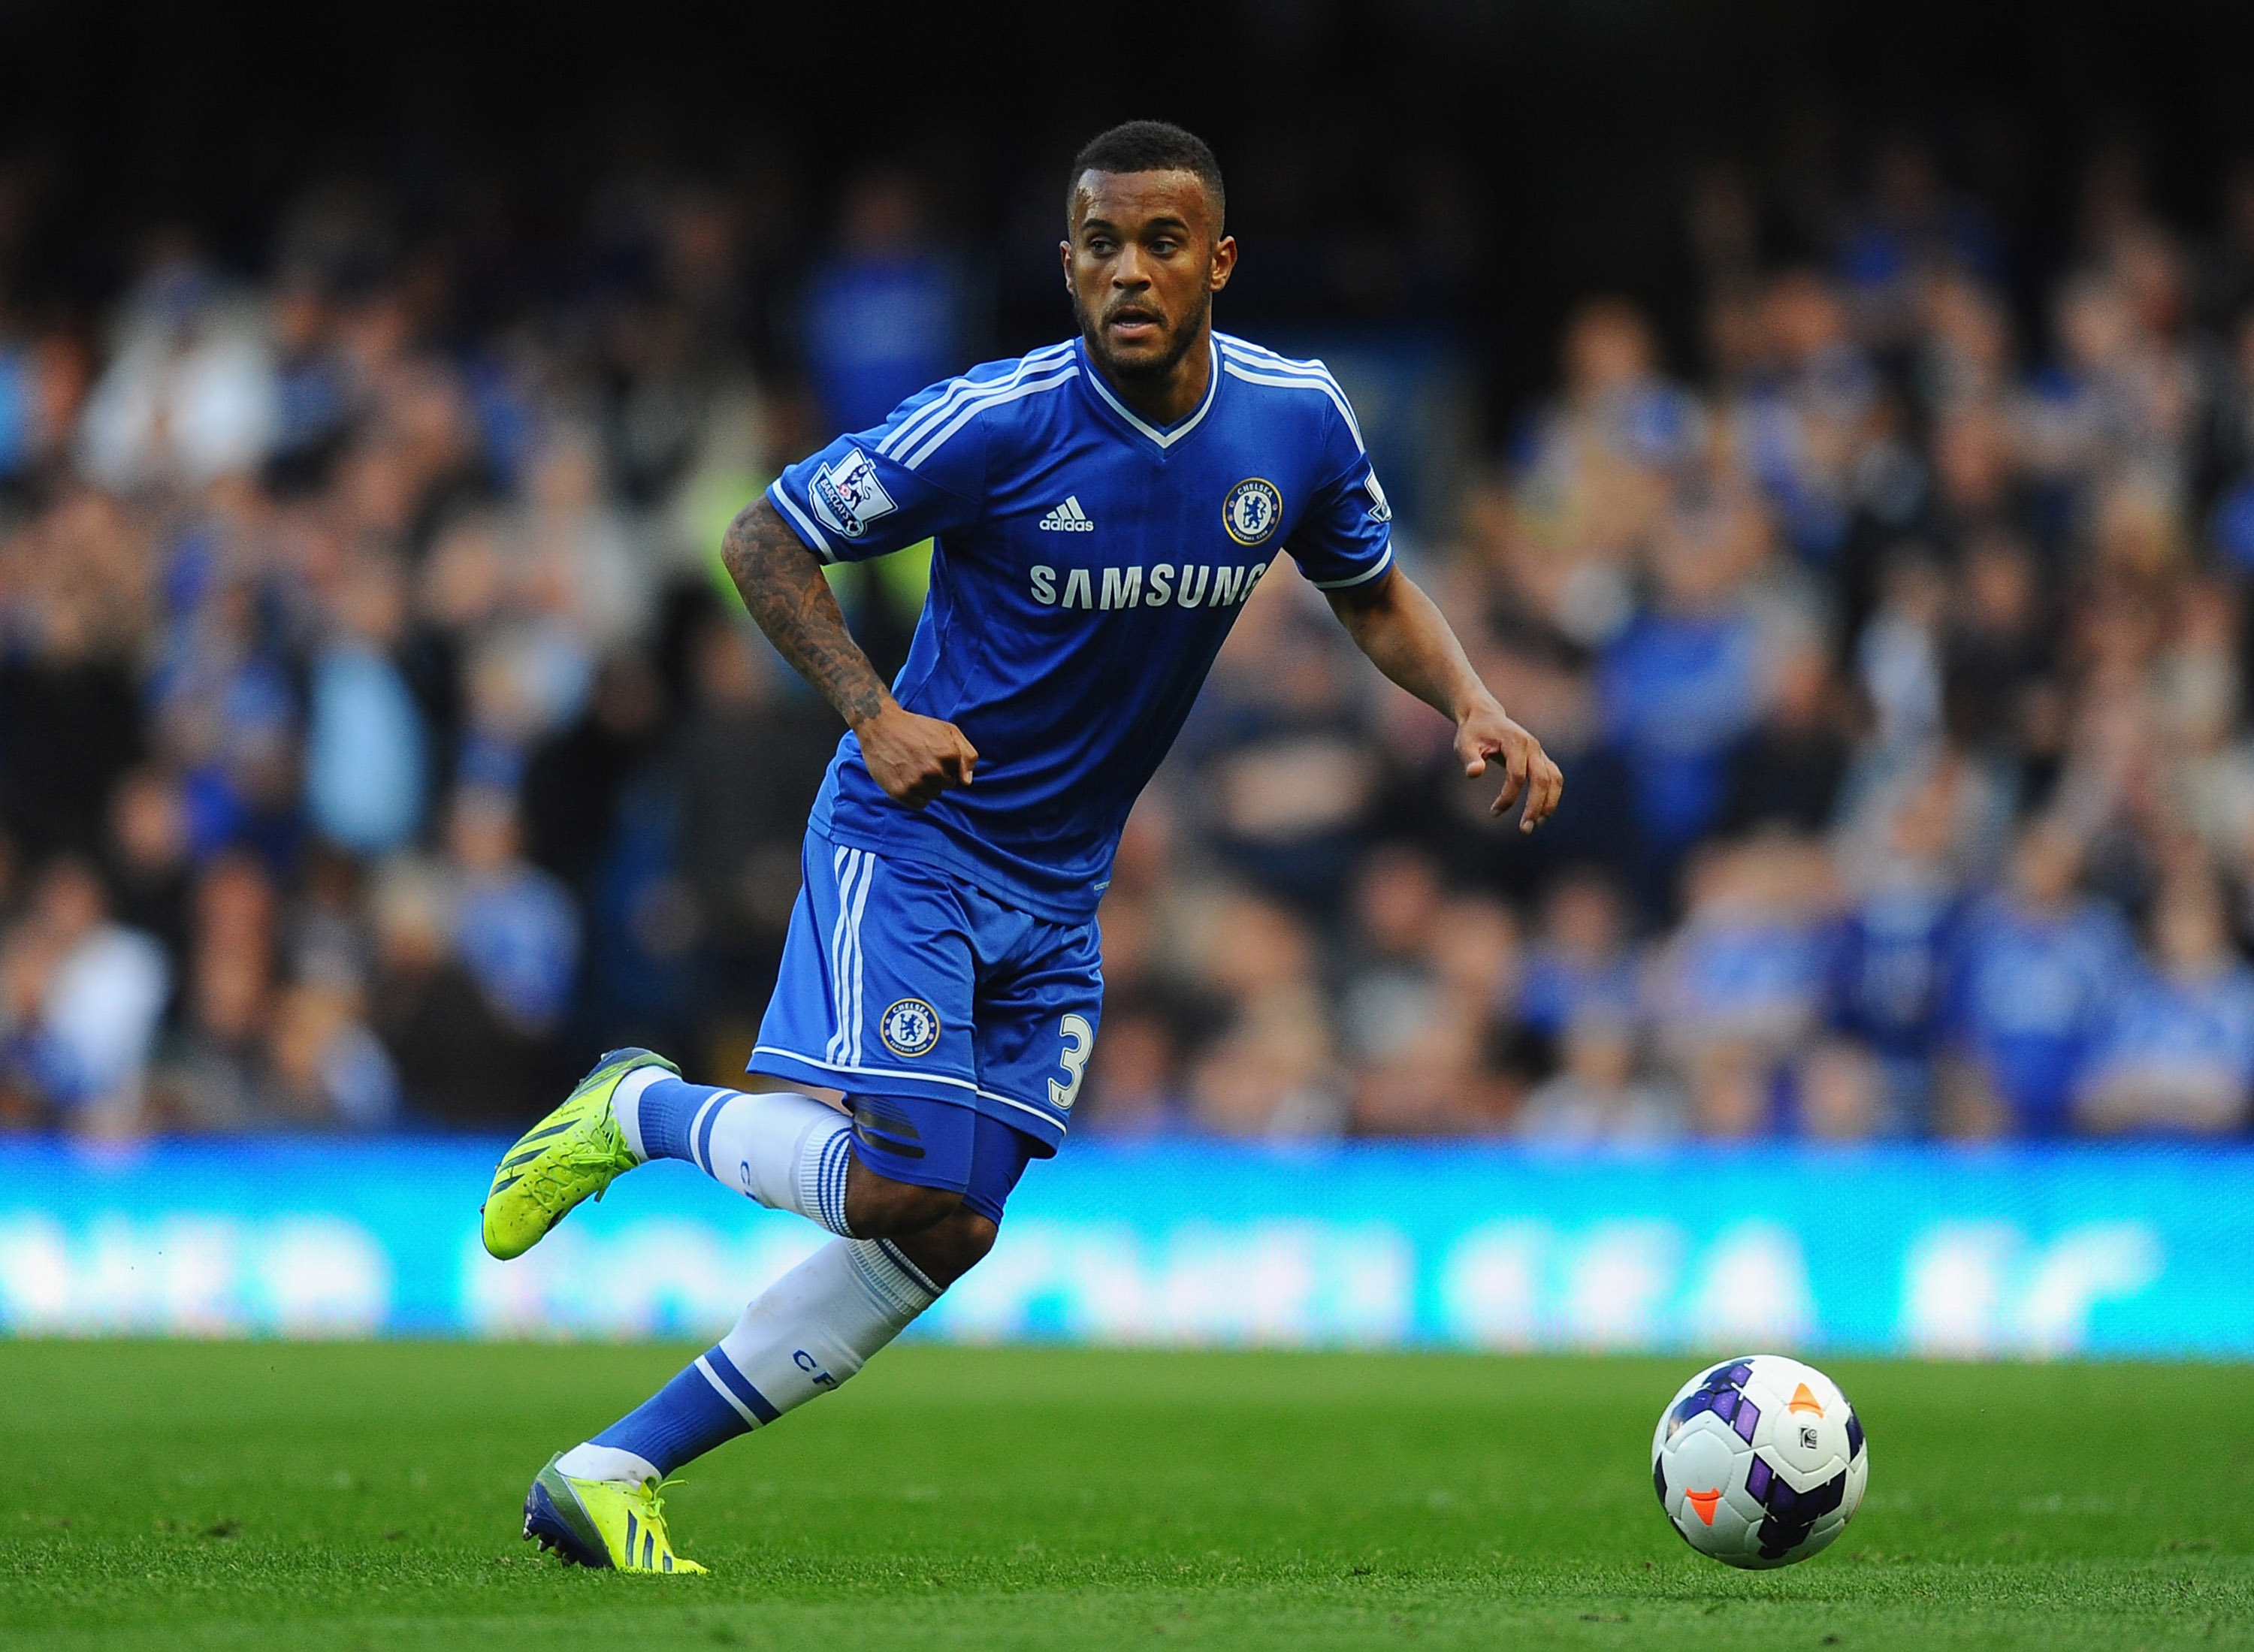 Chelsea defender Ryan Bertrand